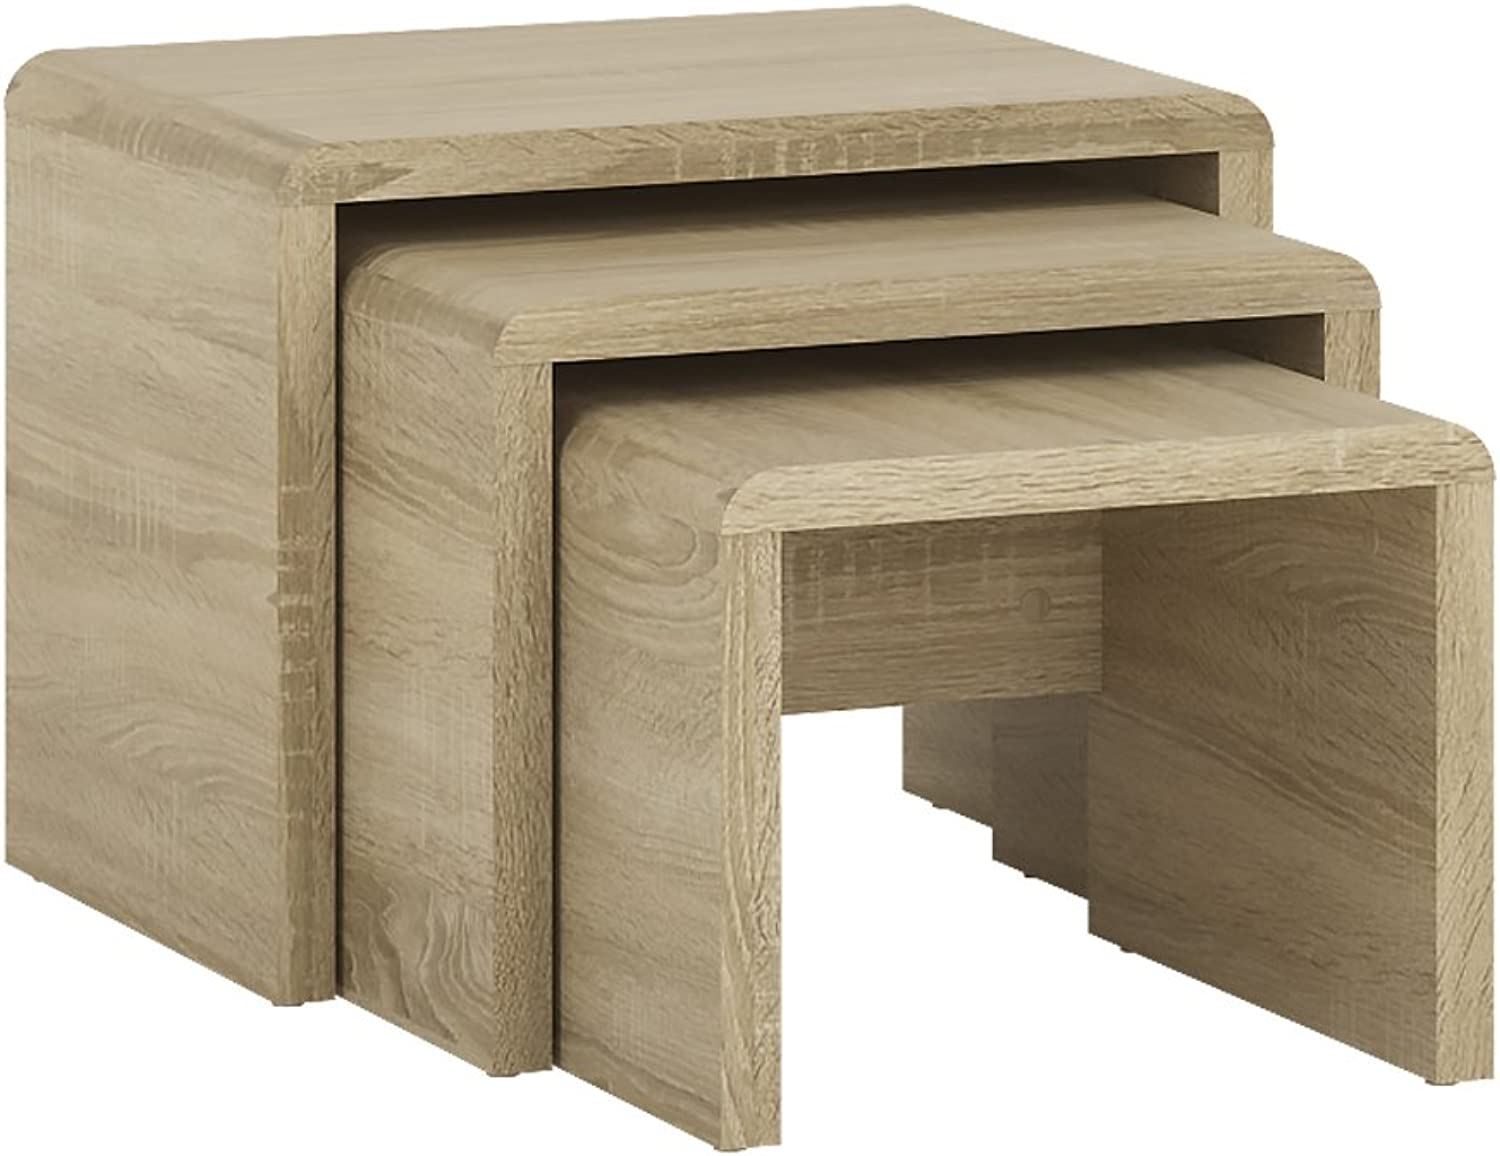 (3 Table Nest) - Furniture To Go 4YOU Small Nest of Tables, Coffee Table, Living Room - Sonama Oak